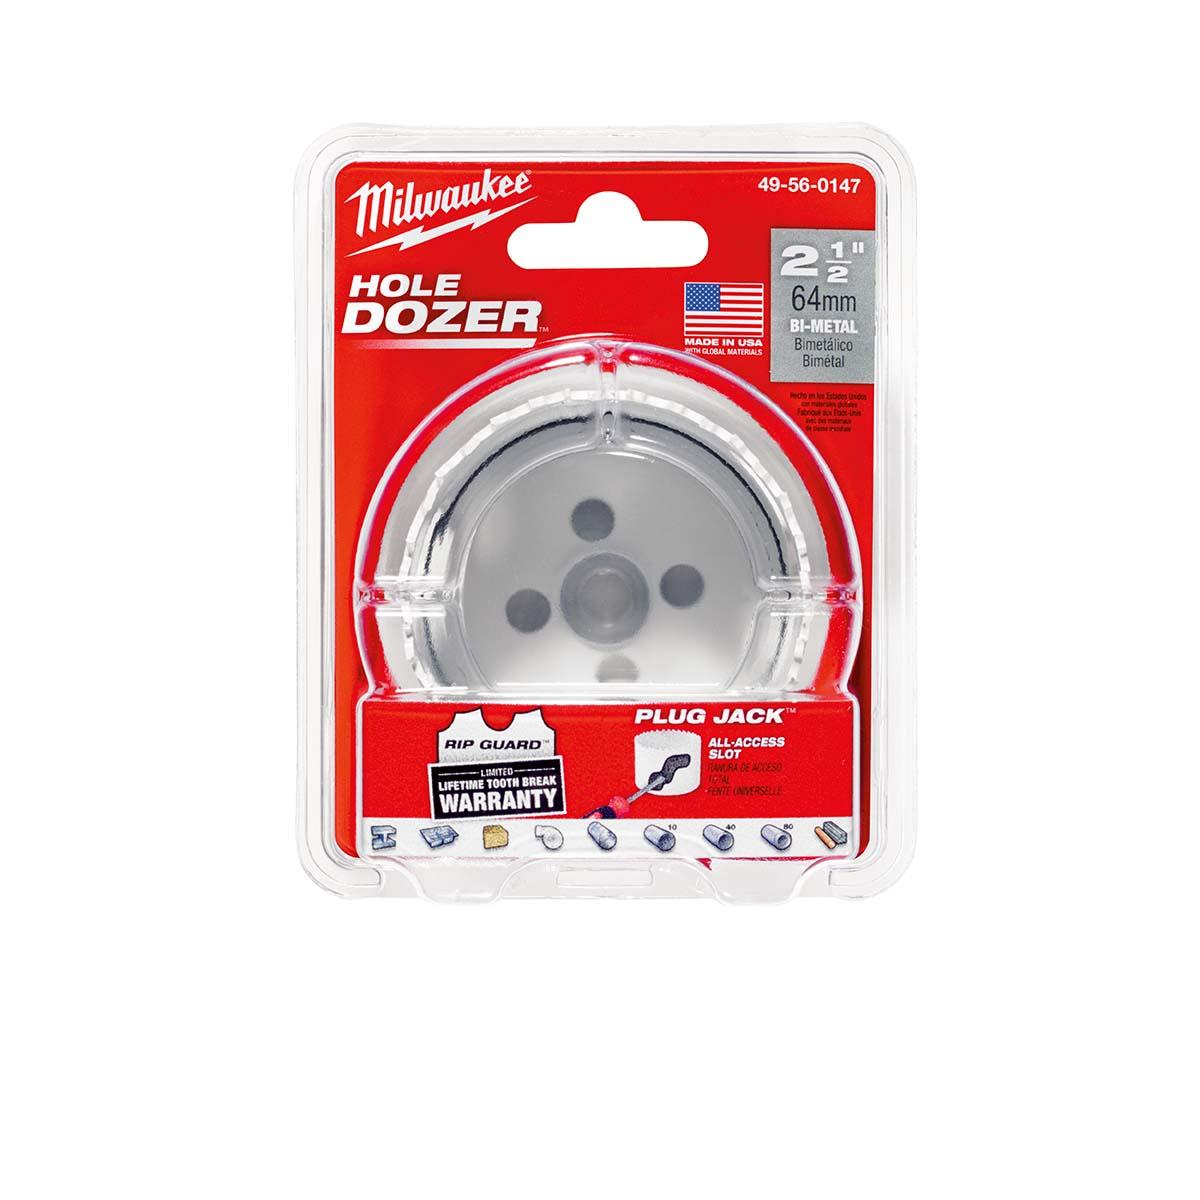 "2-1/2"" Hole Dozerâ""¢ Bi-Metal Hole Saw"